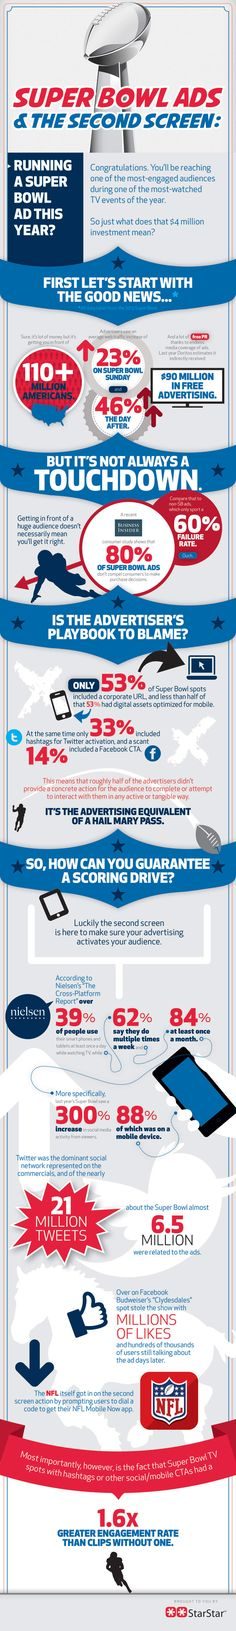 Millions of dollars are spent on production and air time for Super Bowl ads. If you don't consider the 2nd screen and social media in your planning and implementation you are flushing a boat load of money down the toilet. #superbowlcommercials